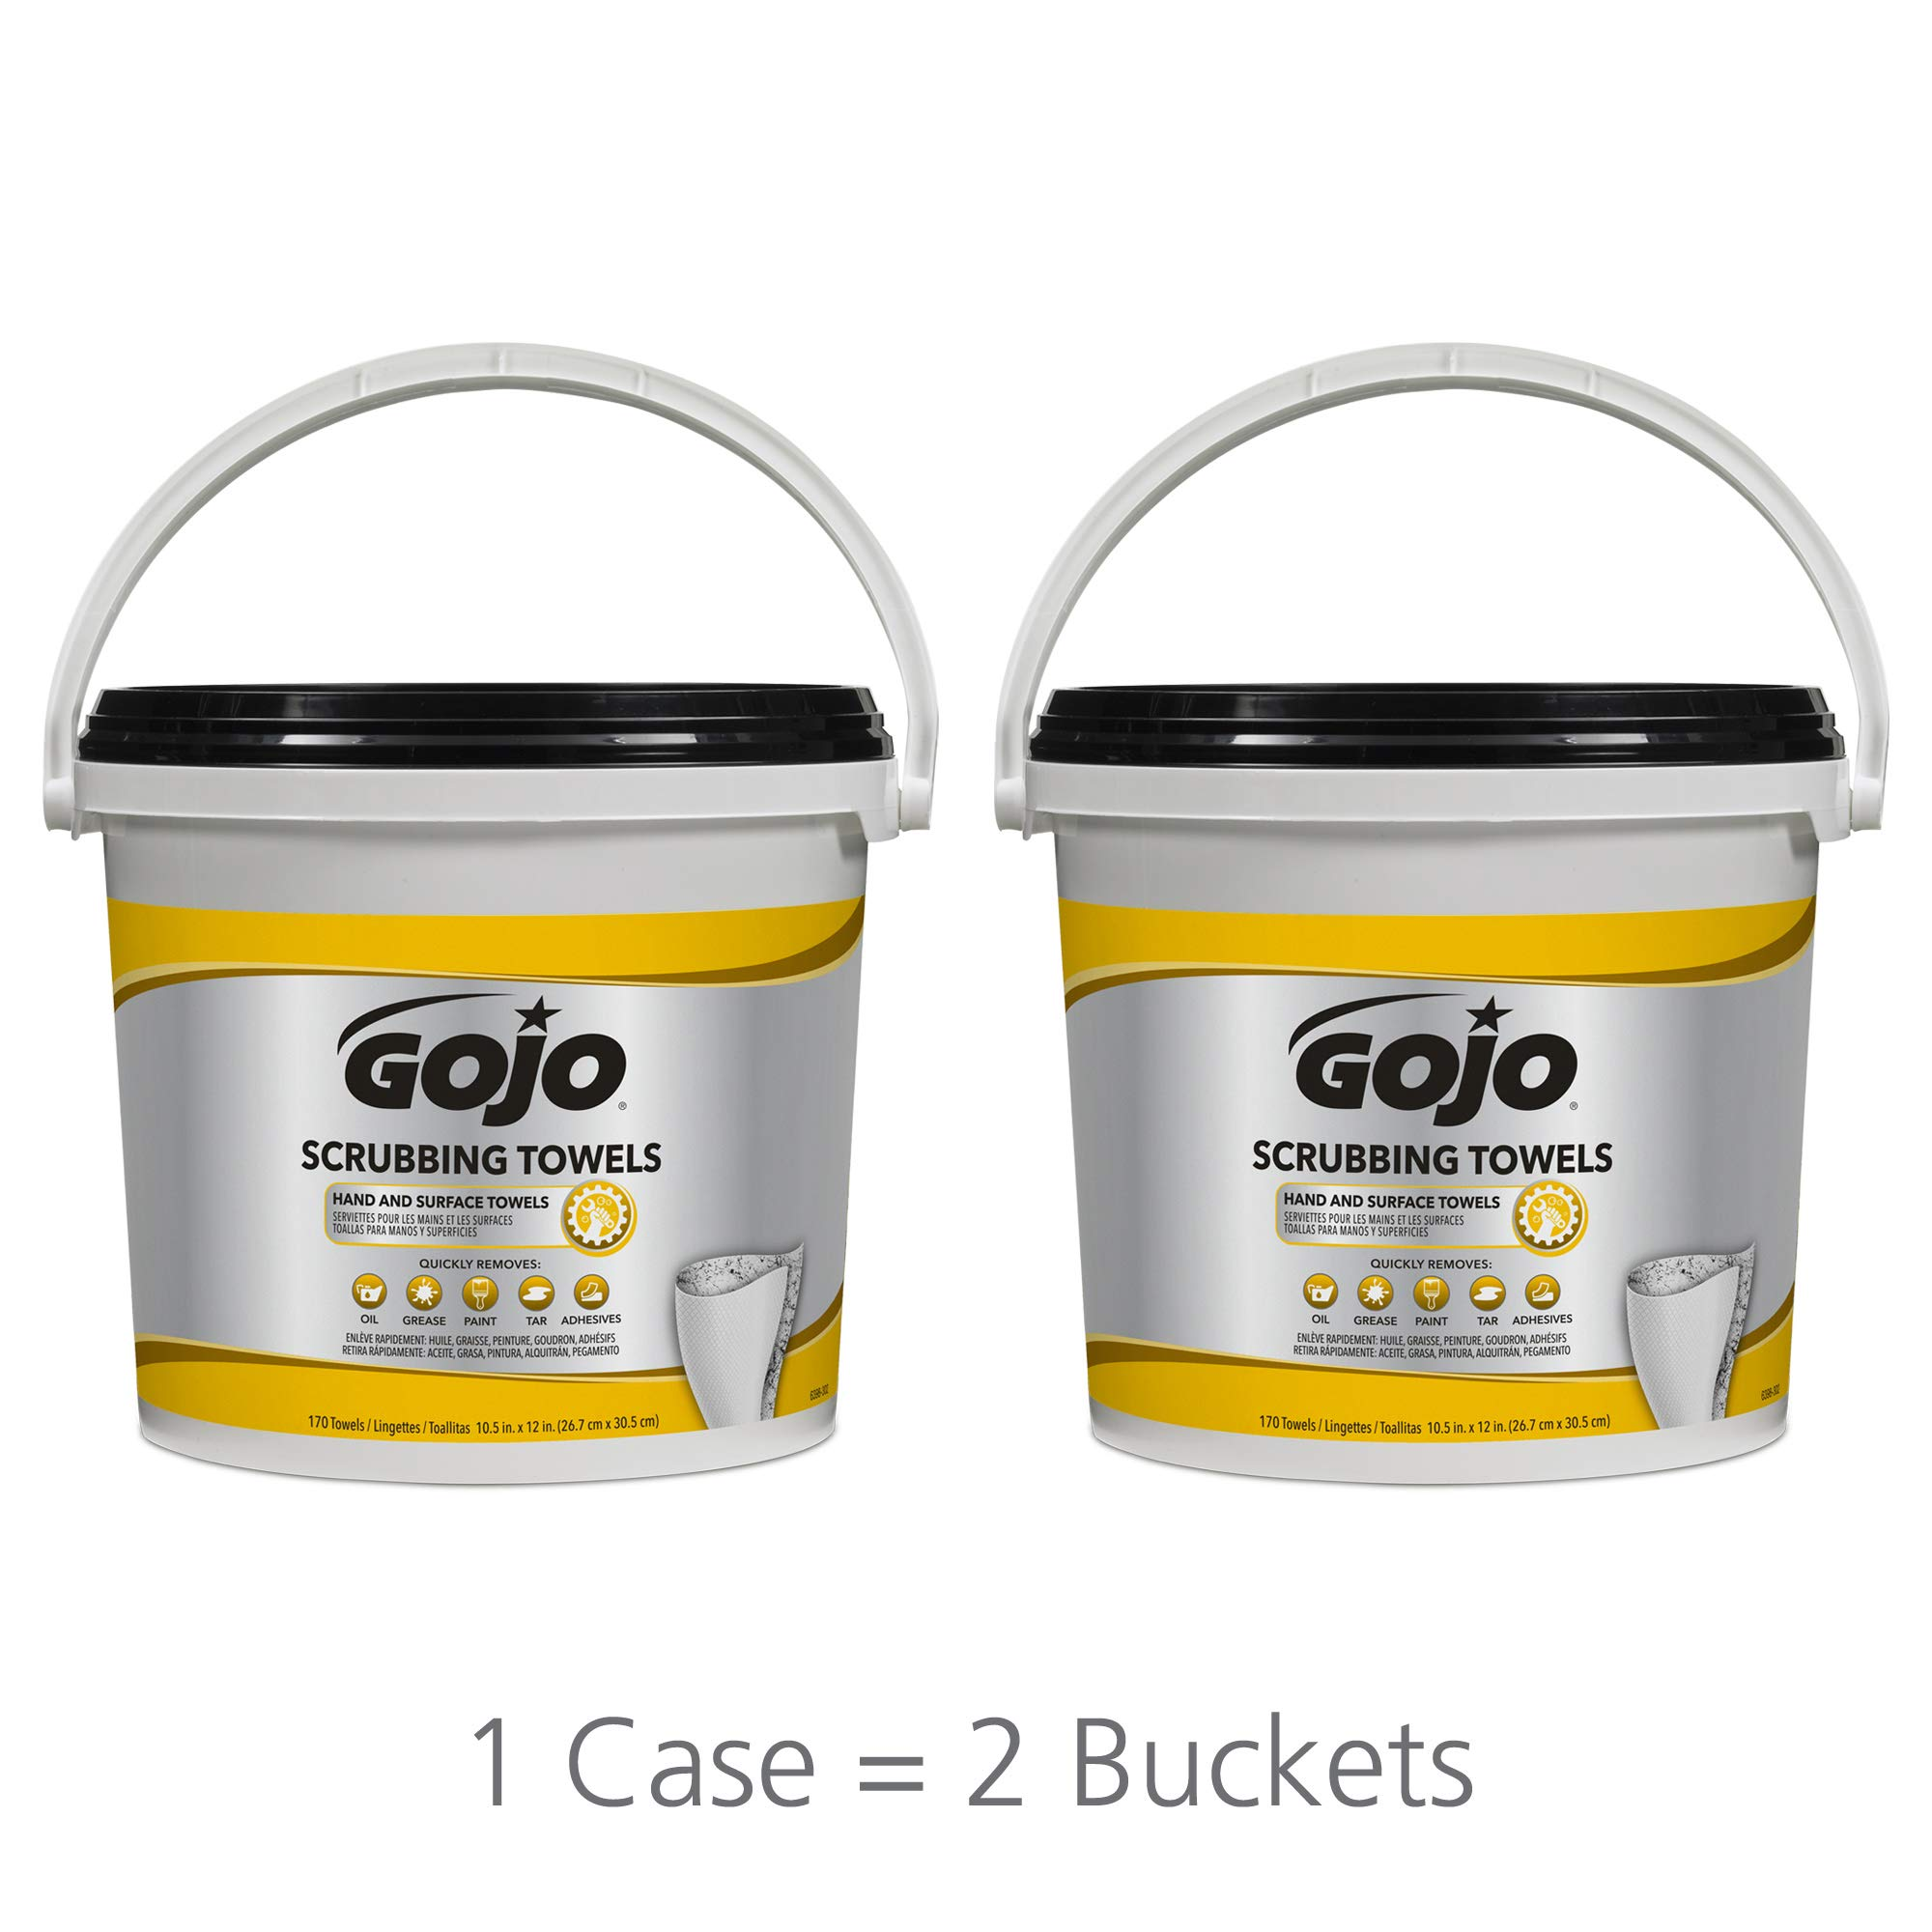 GOJO Scrubbing Towels, Fresh Citrus Scent, 170 Count Extra Large Dual Textured Wipes Bucket (Pack of 2) – 6398-02 by Gojo (Image #6)